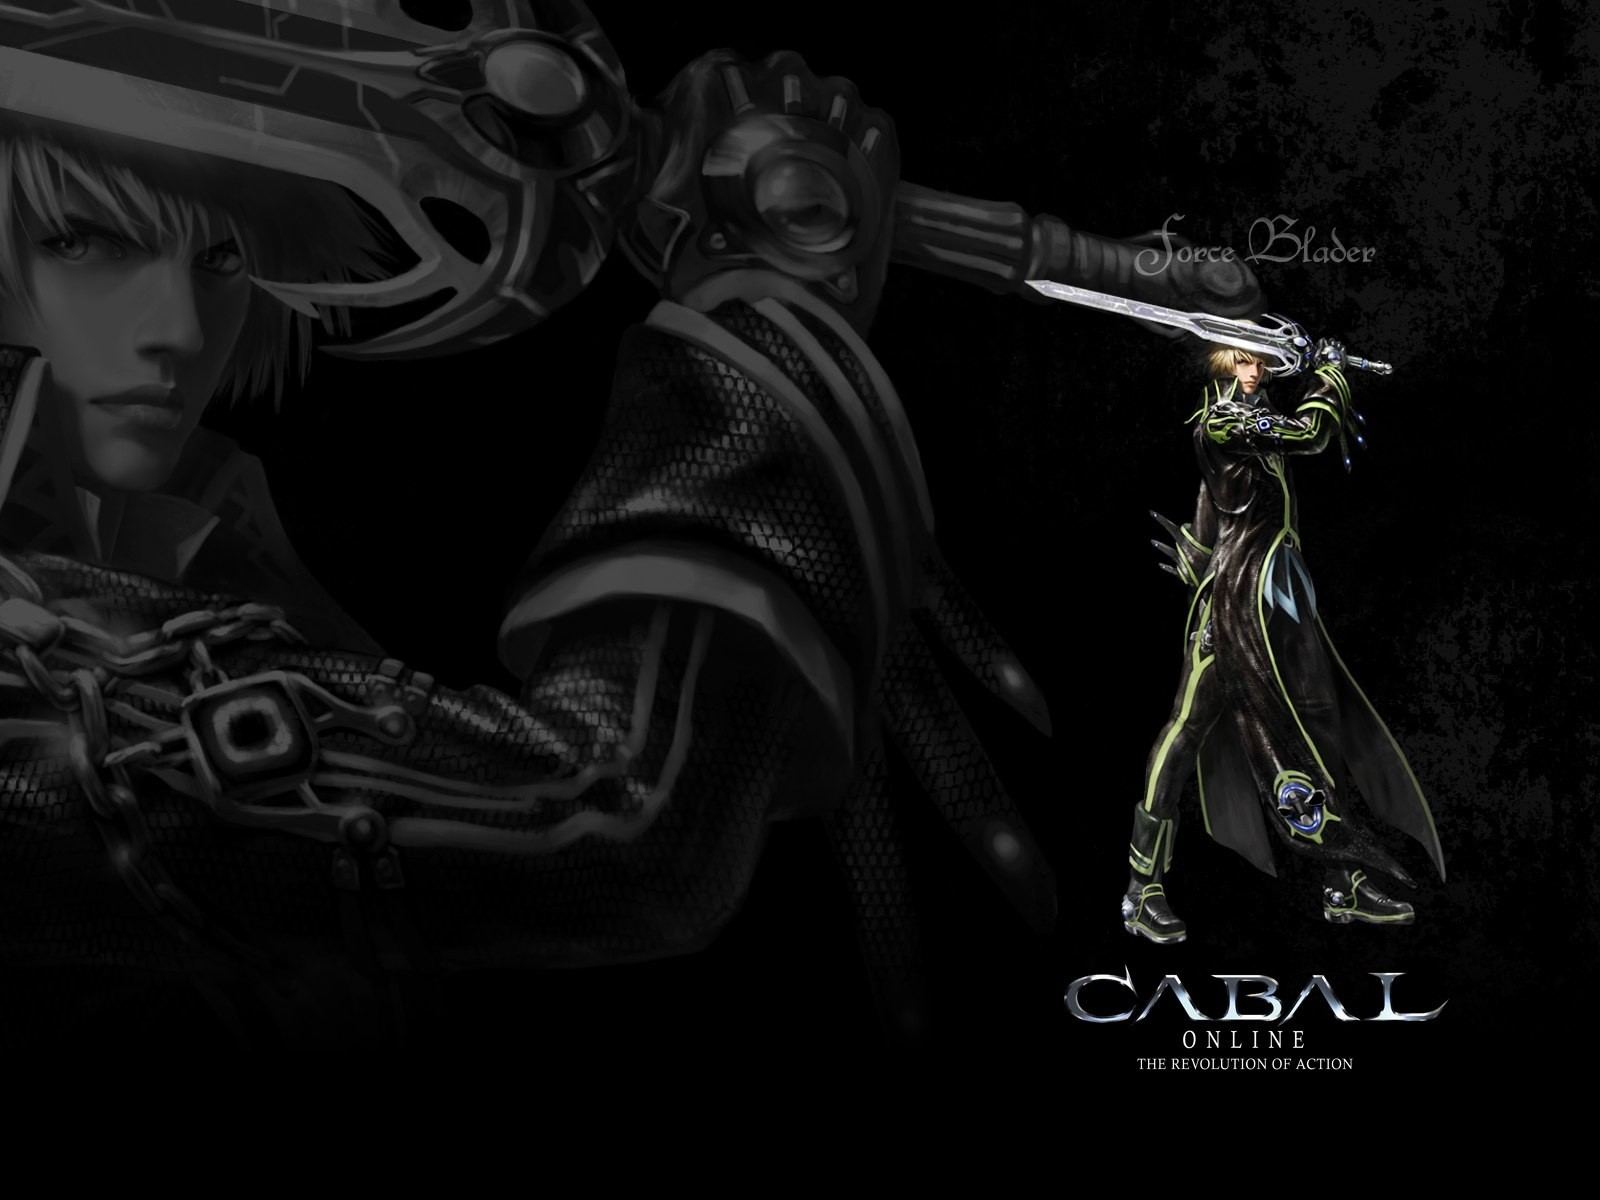 video games Cabal Online HD Wallpaper